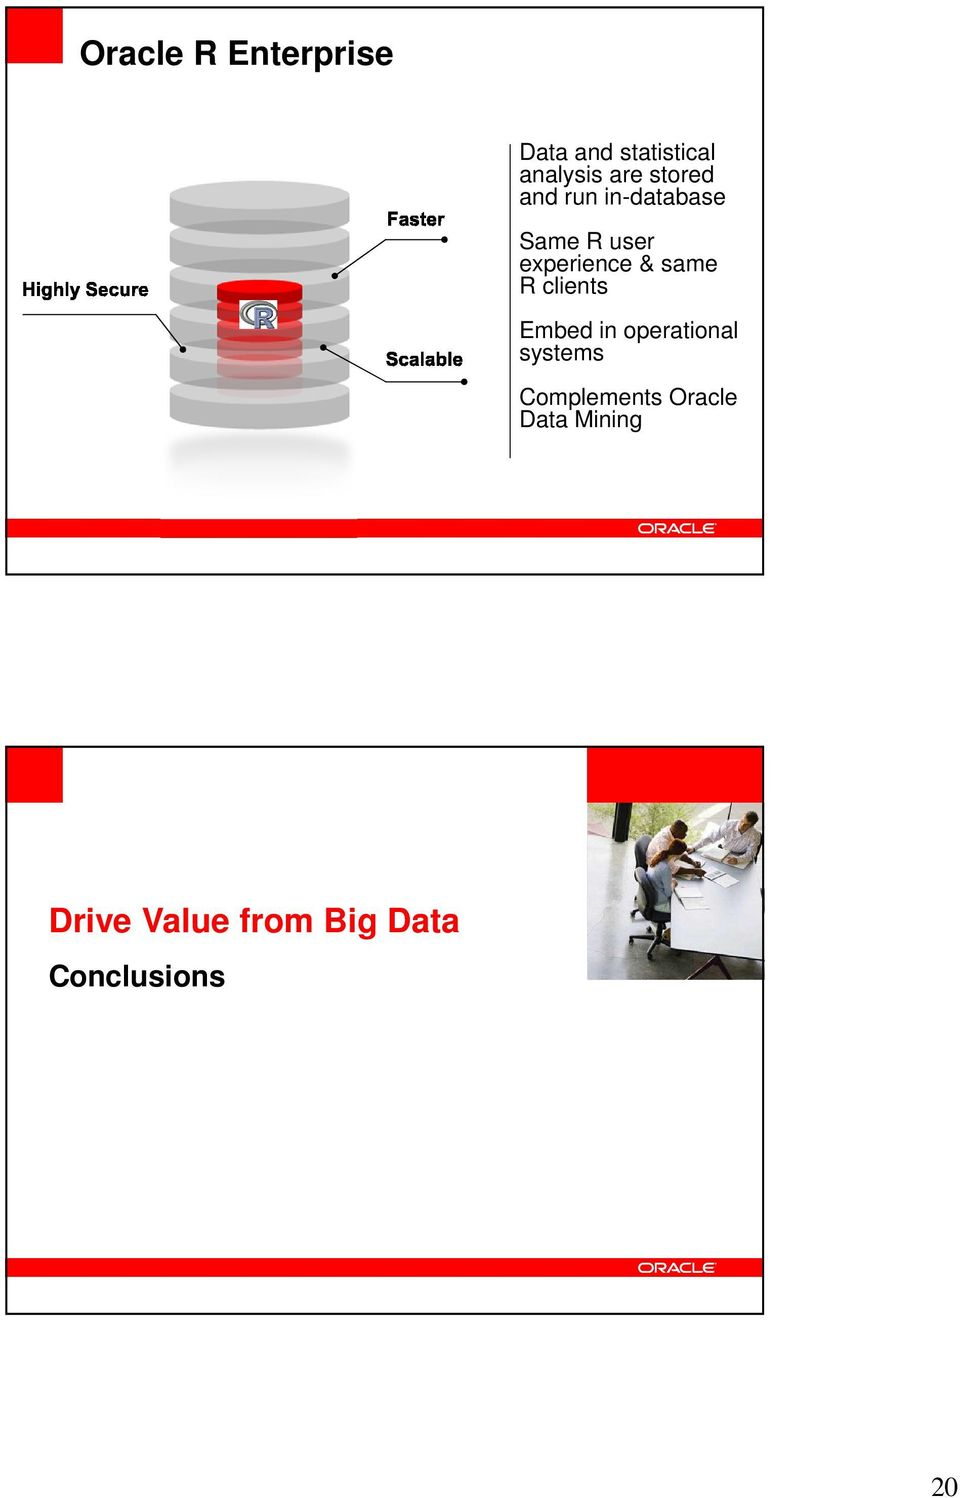 Embed in operational systems Complements Data Mining